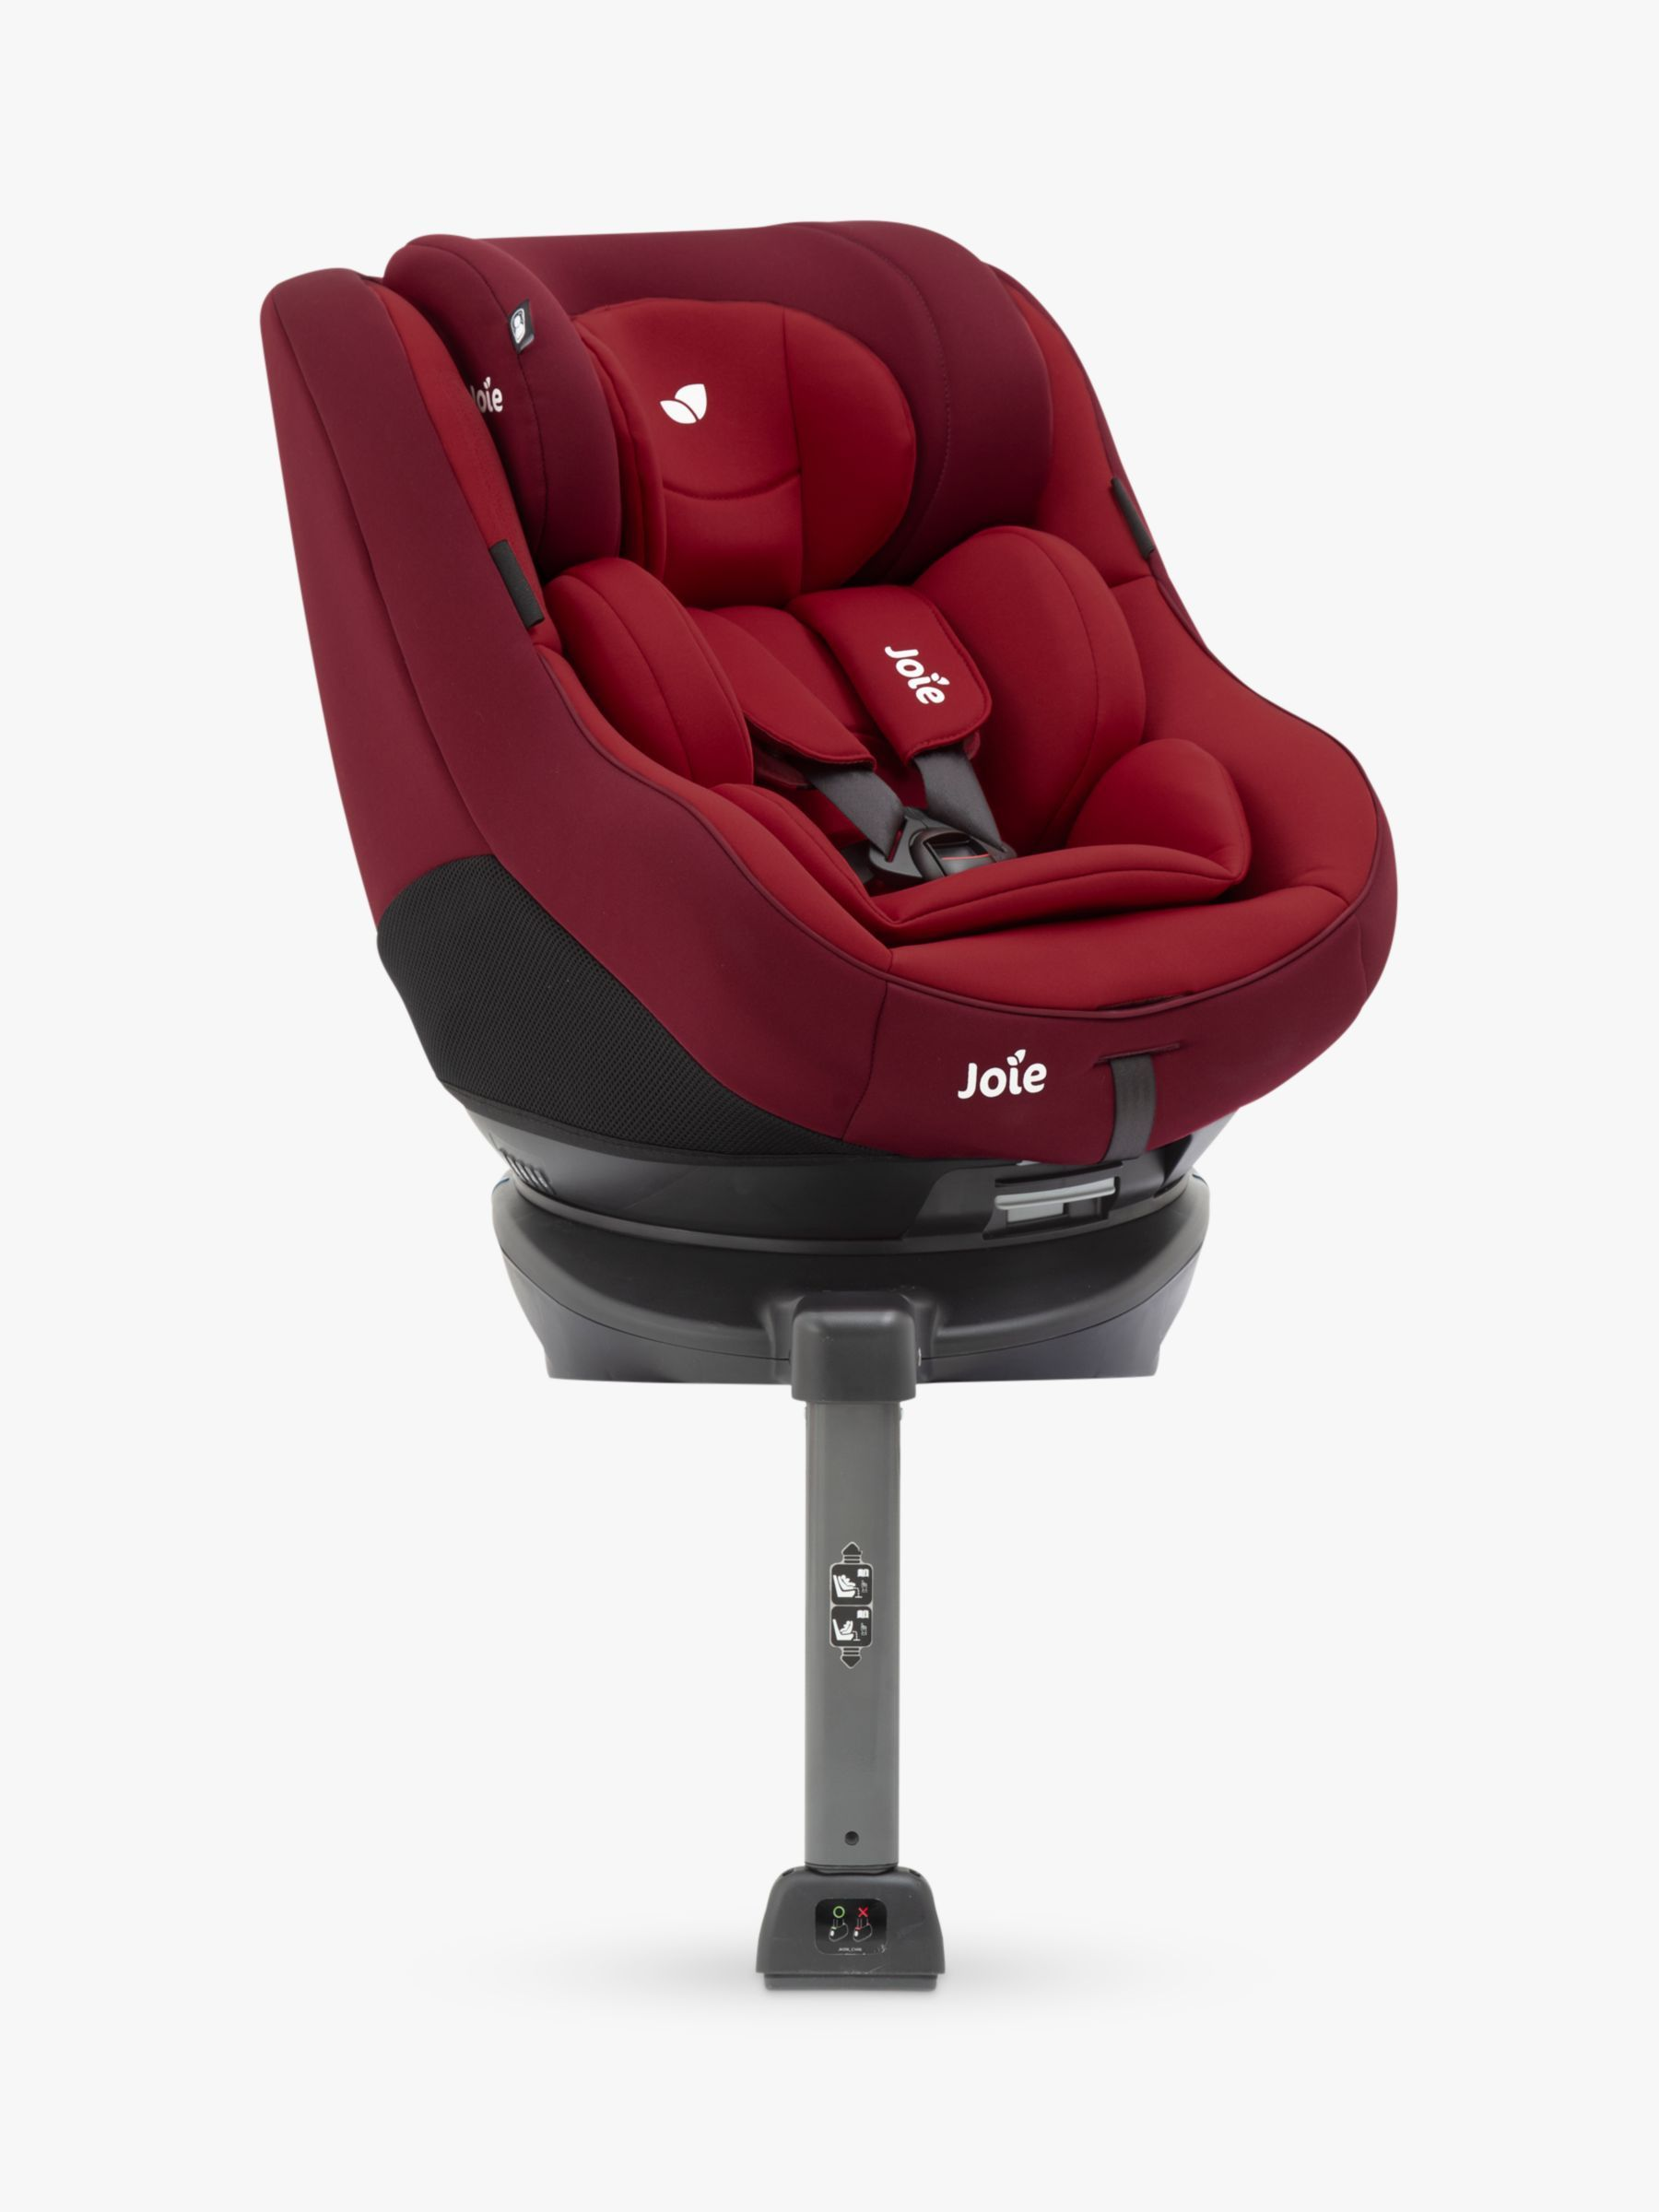 Joie Spin 360 Group 0+/1 Car Seat, Merlot Car seats